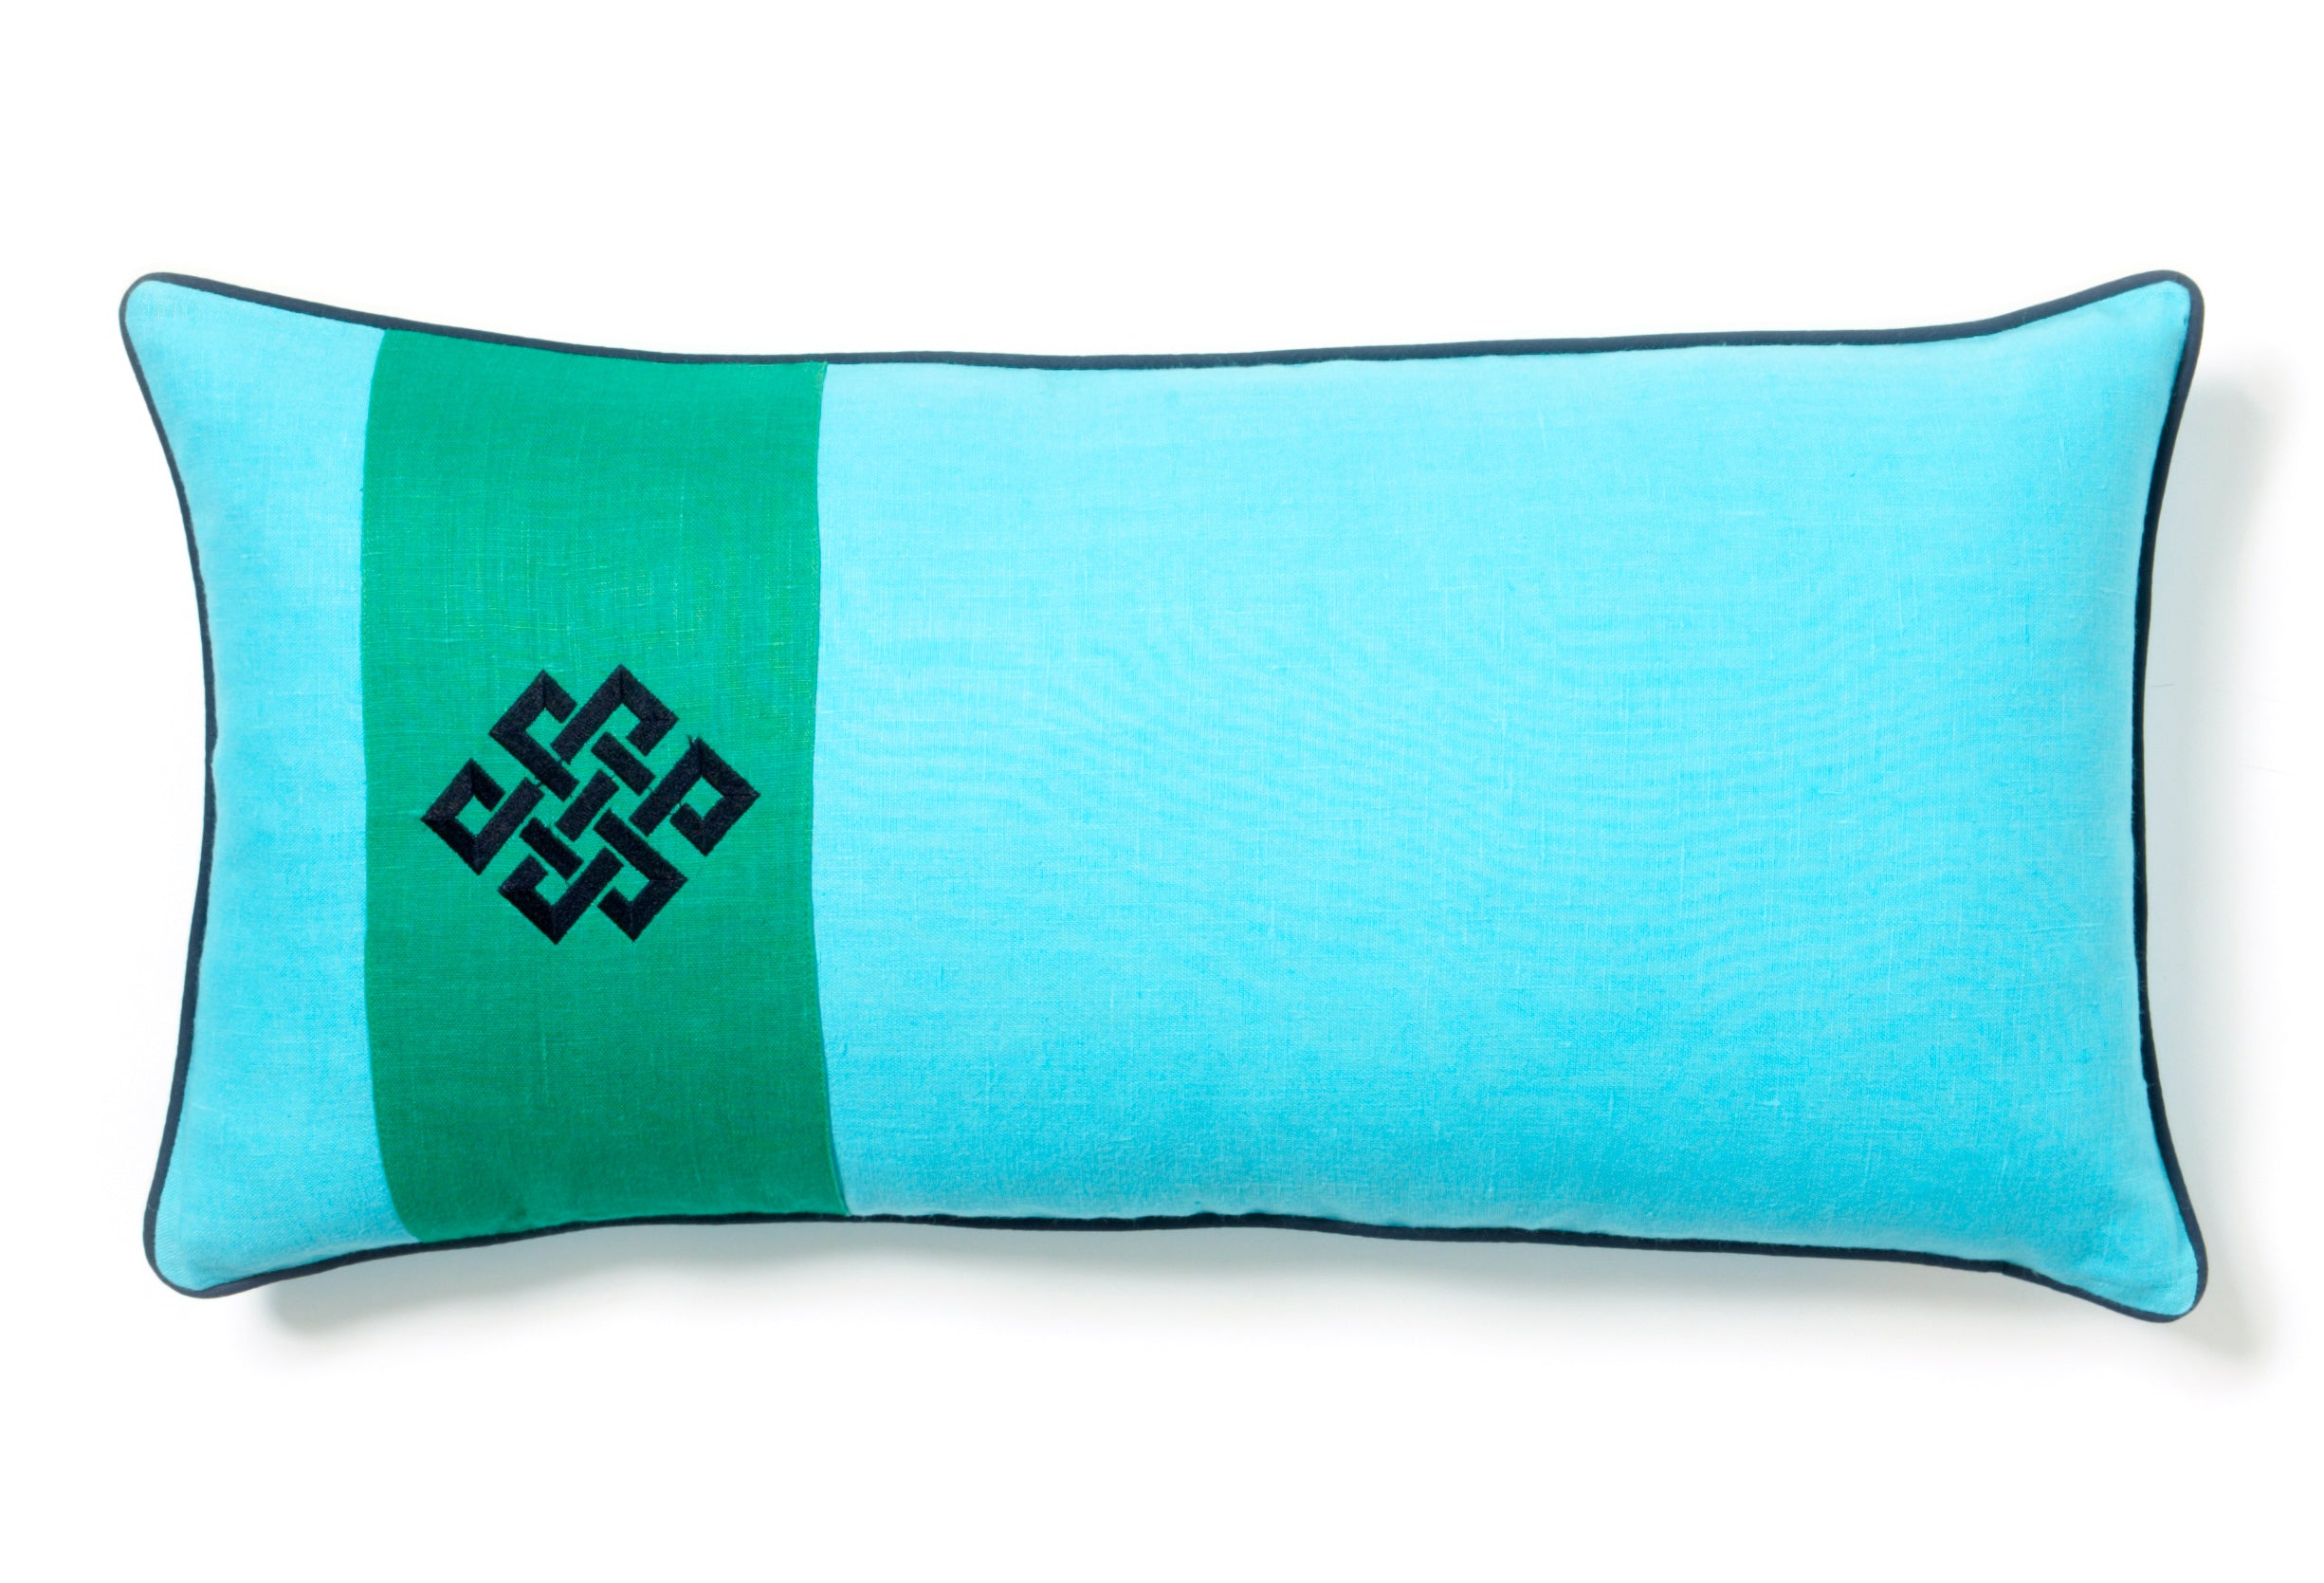 Aqua oblong pillow with a wide green stripe and navy accents